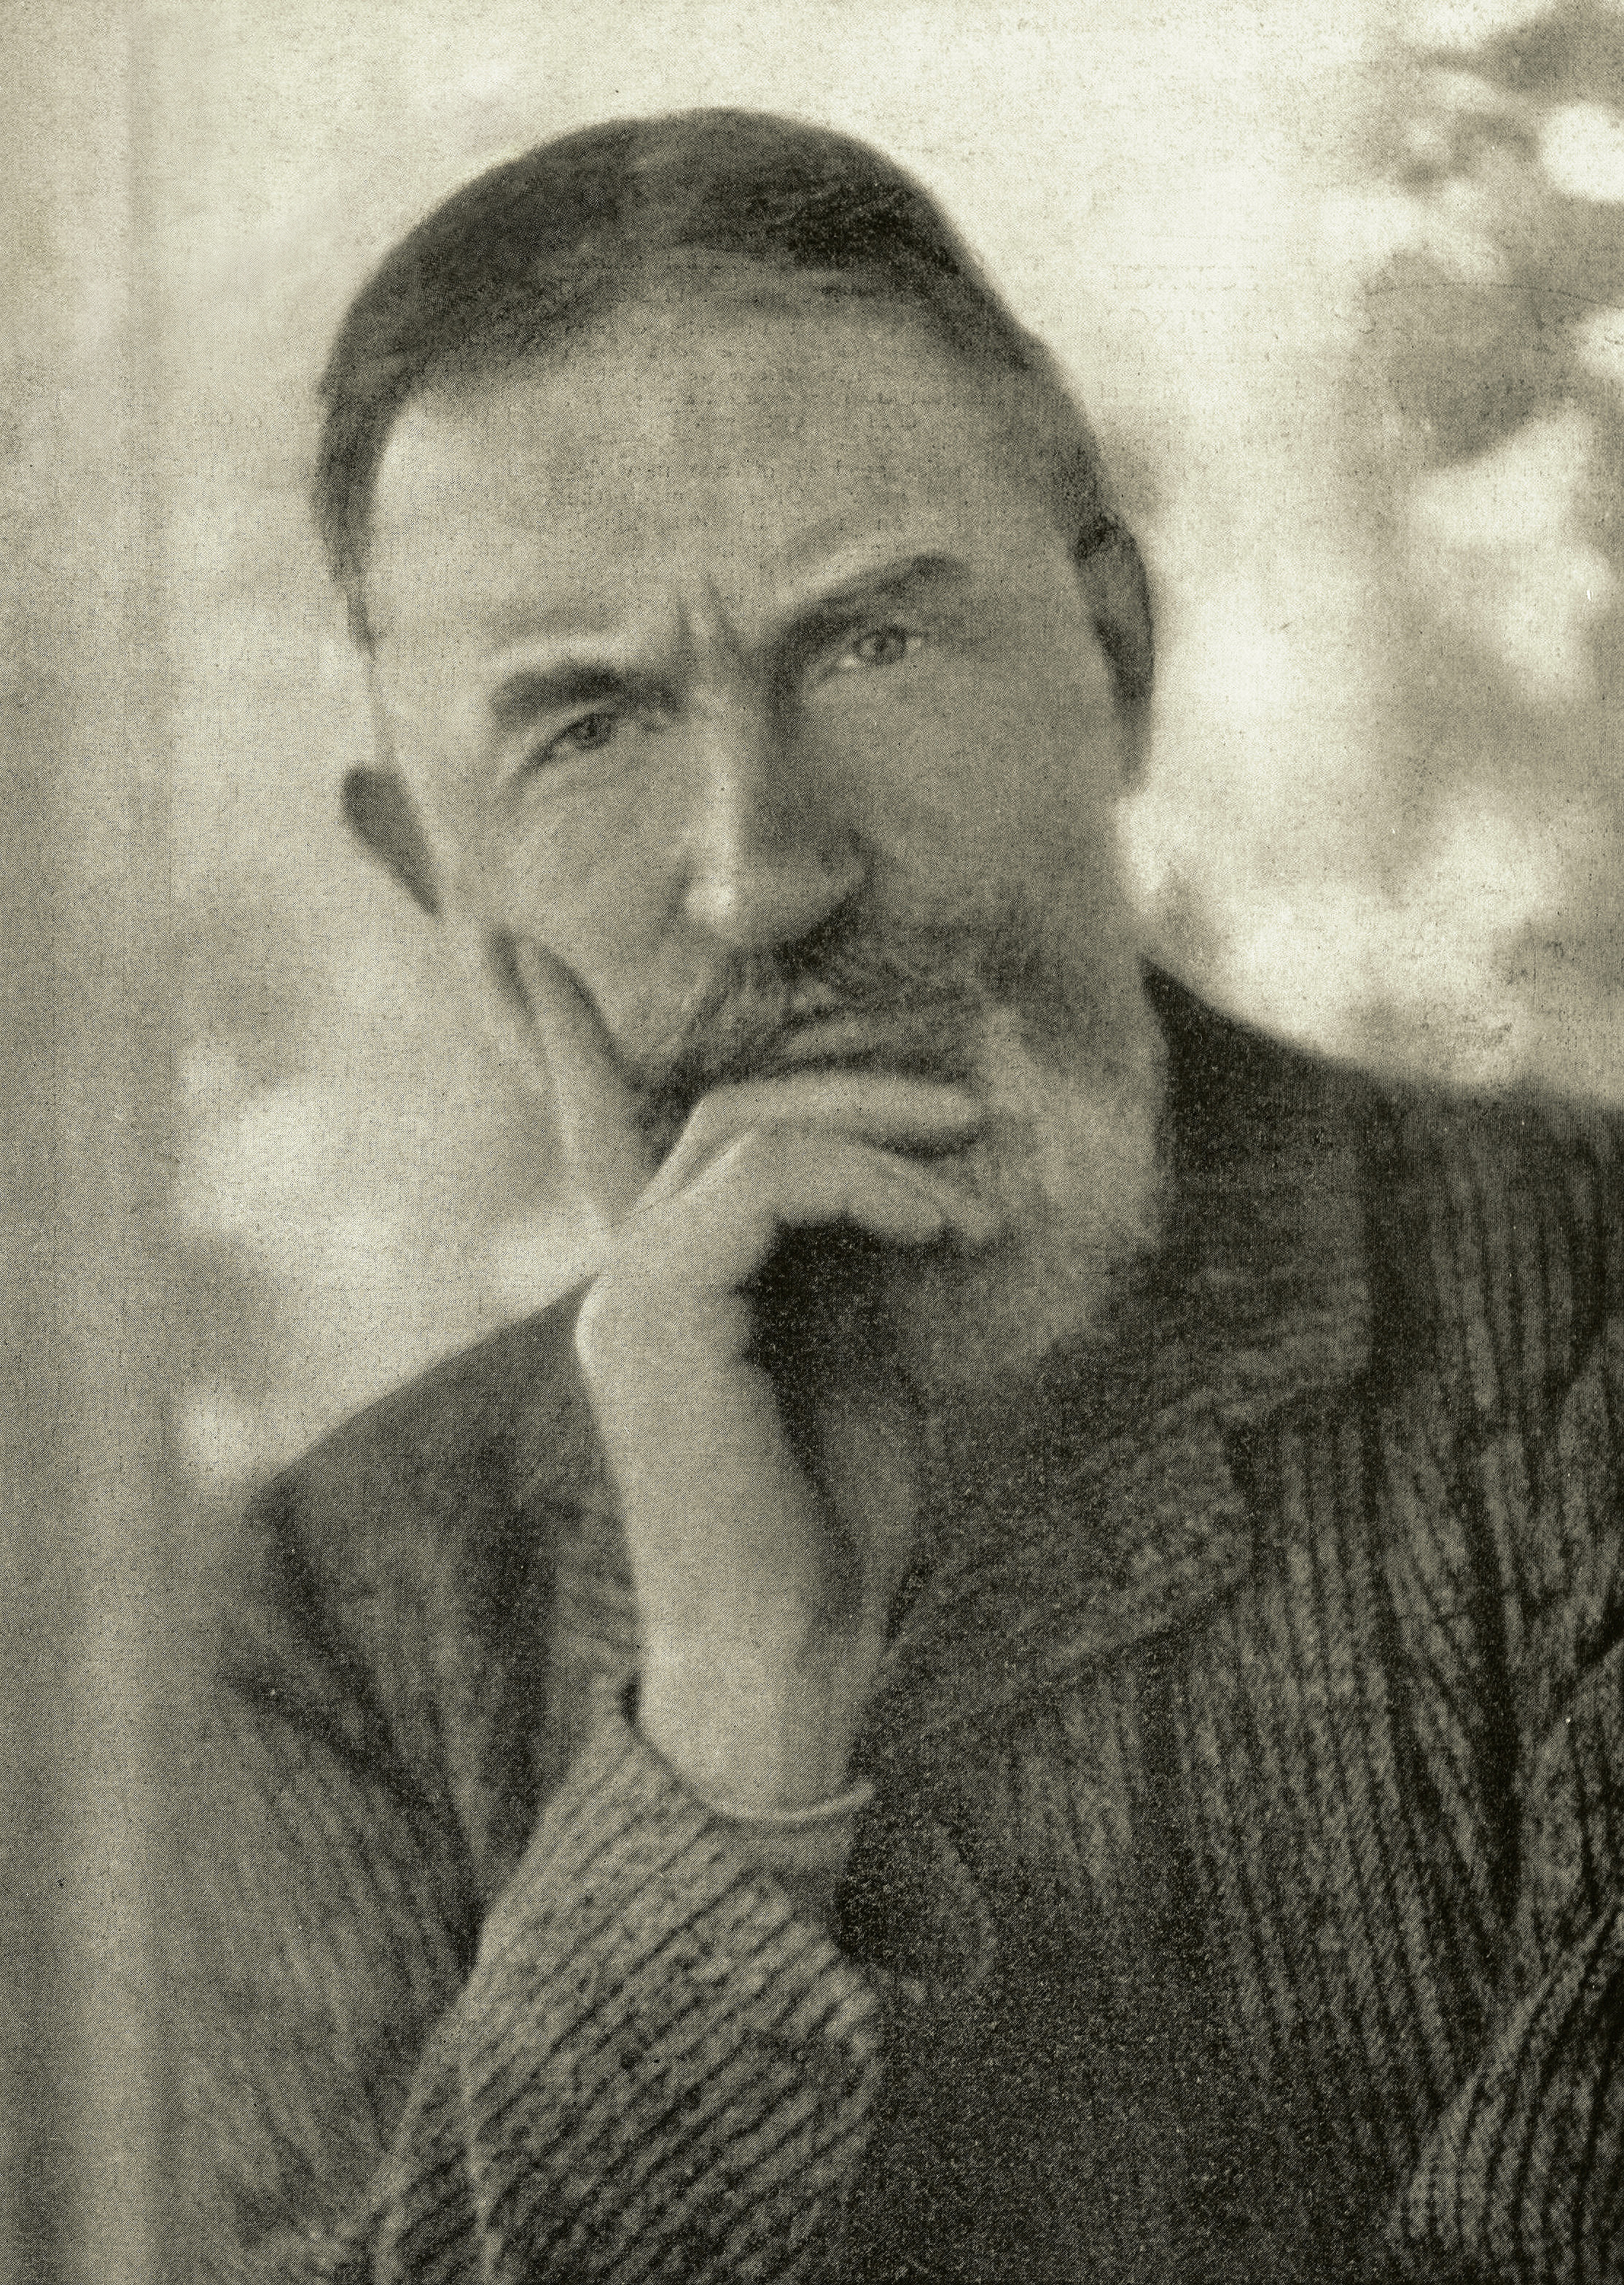 george bernard shaw middle aged man greying hair and full beard